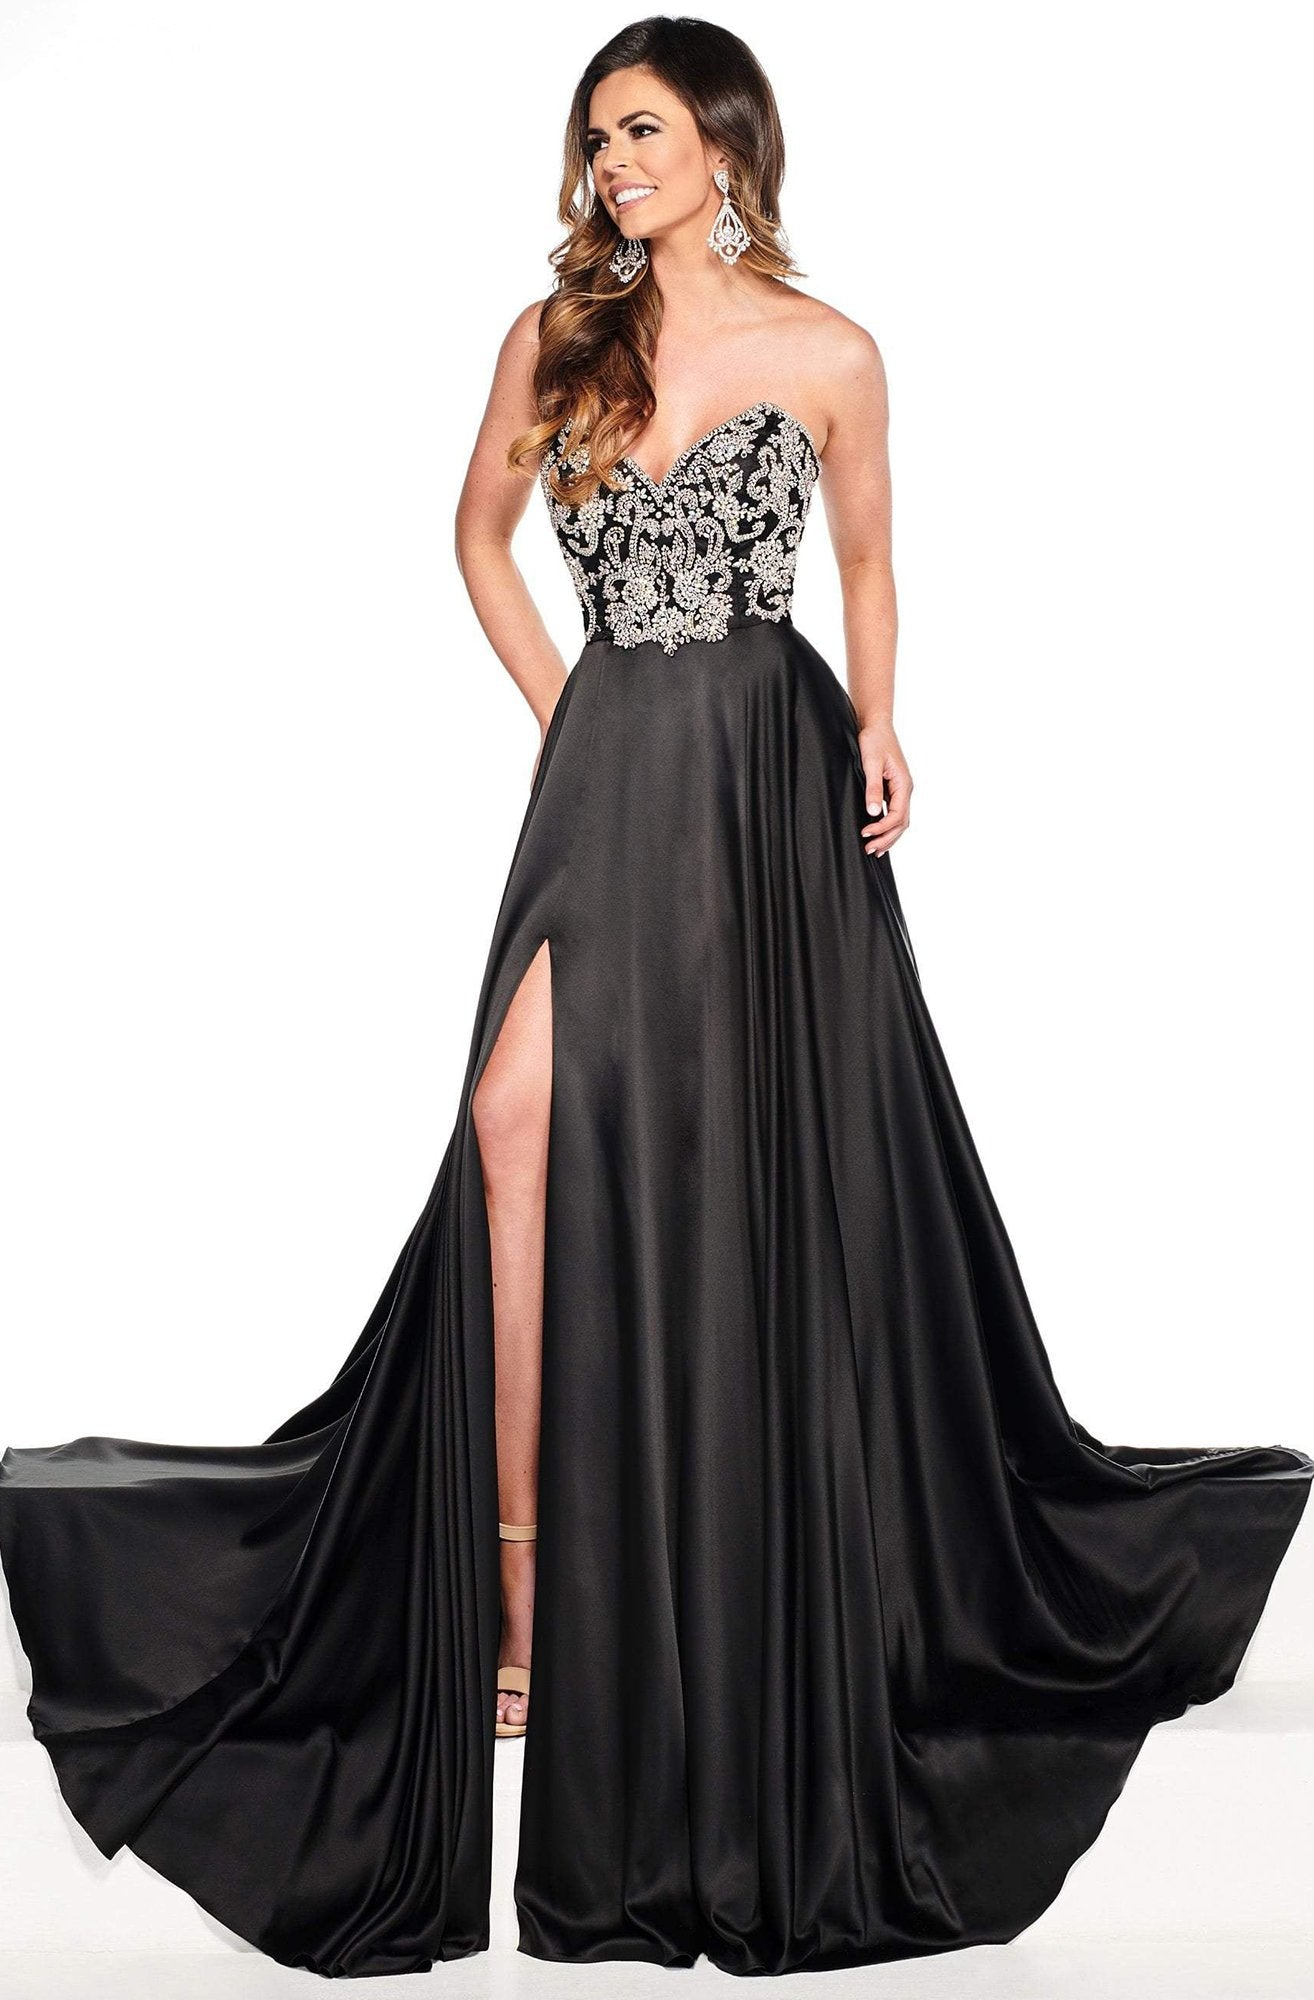 Rachel Allan Primadonna - 5089 Crystal Beaded Satin A-line Gown In Black